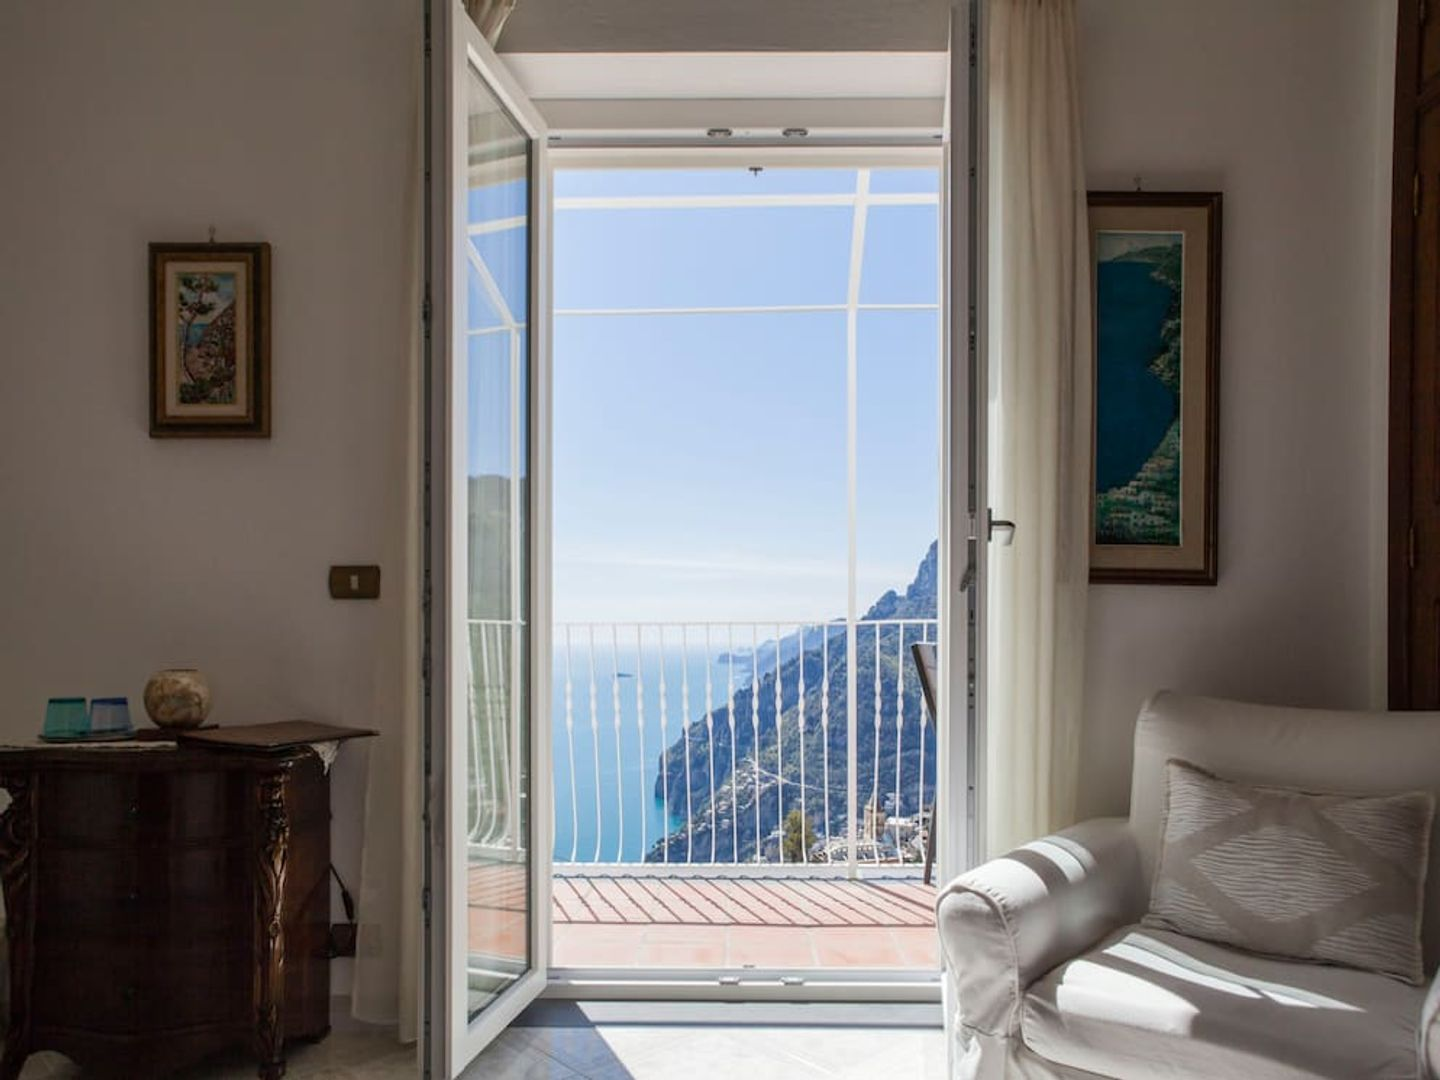 A bedroom with a large window at B&B Mamma Rosa .